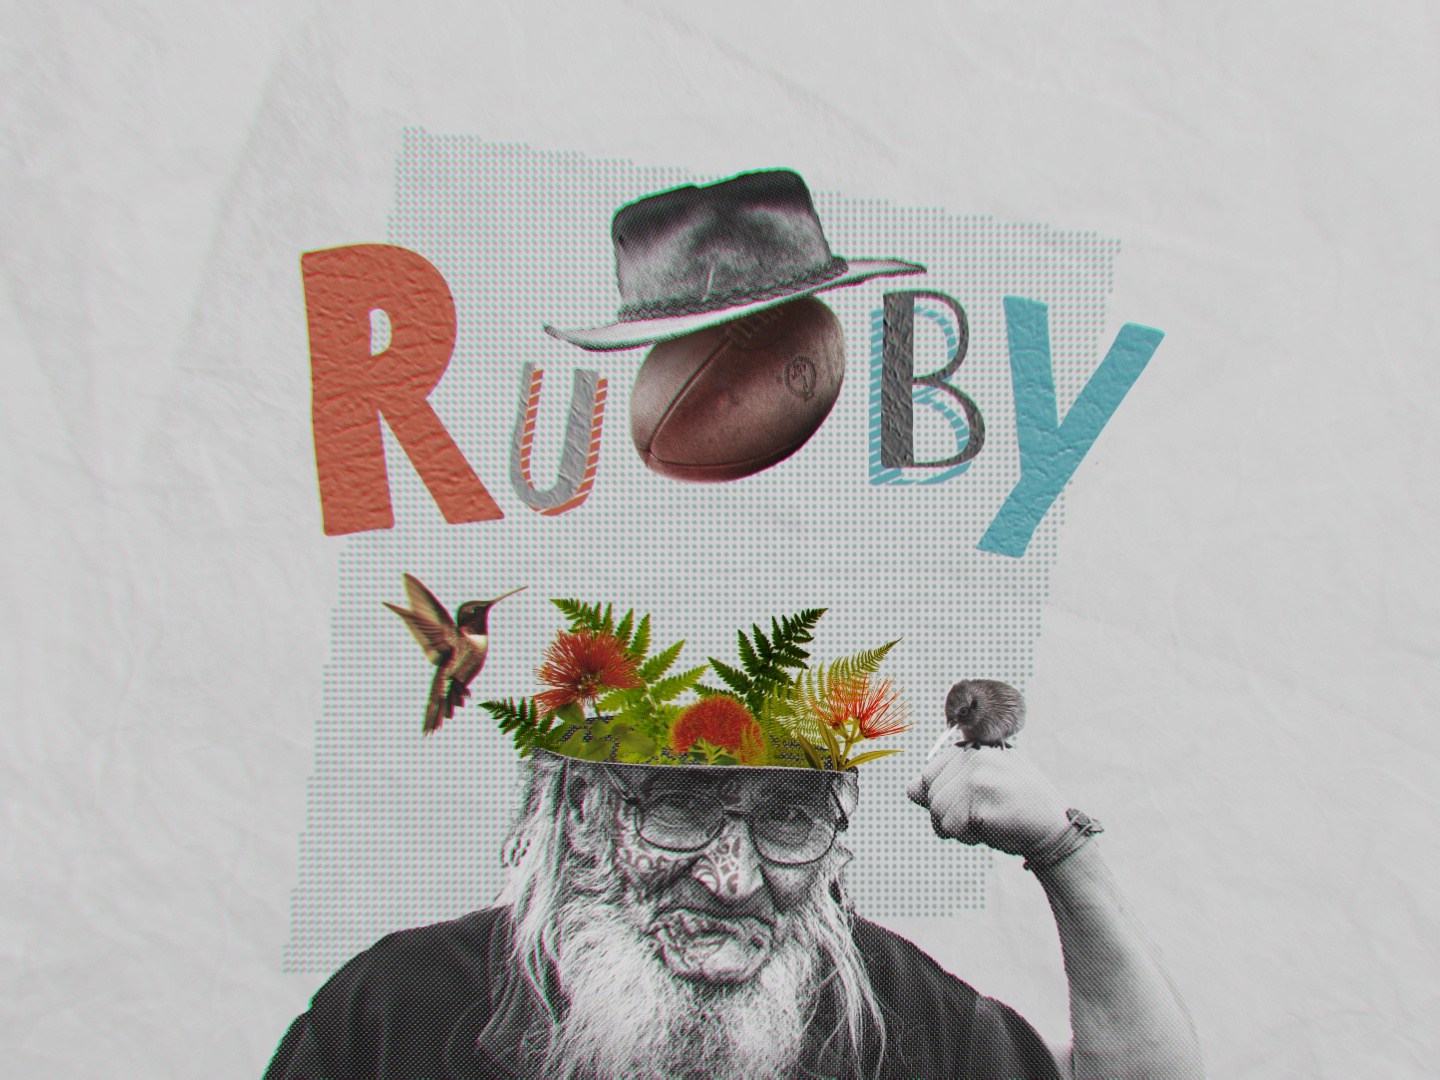 Rugby kiwi hummer rugby papercut collage design 2d